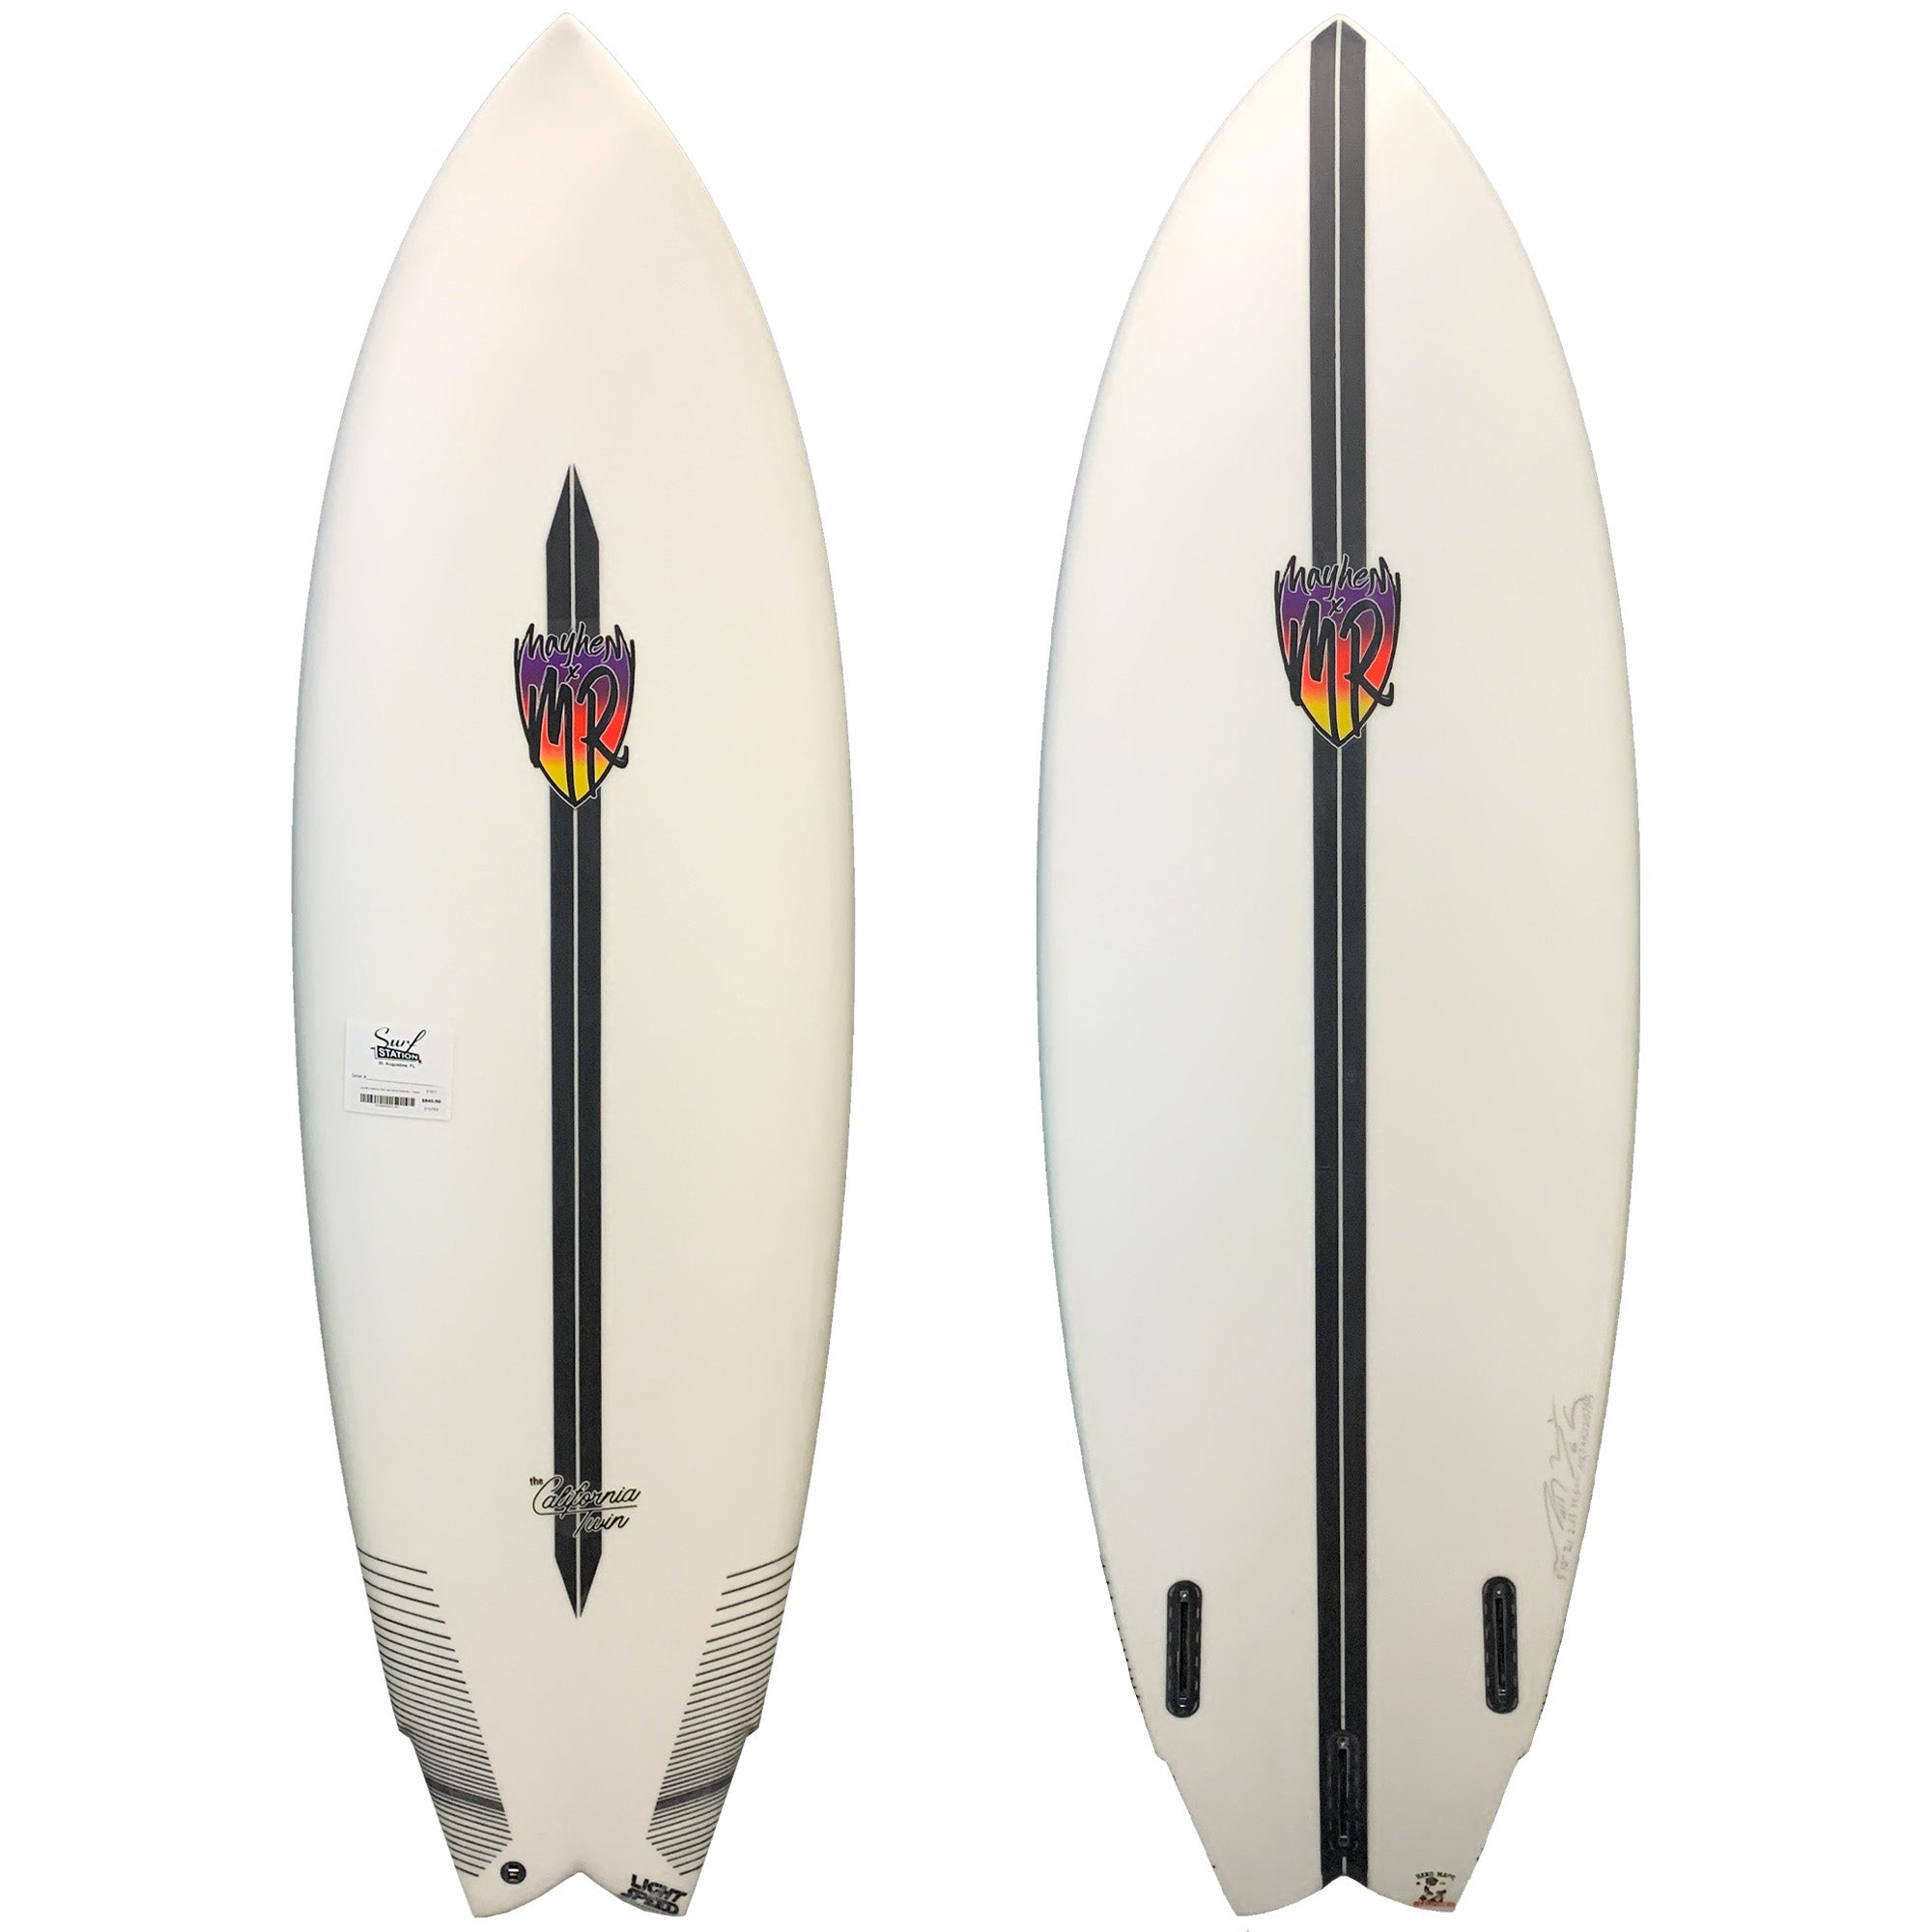 Lost MR California Twin Light Speed Surfboard - Futures